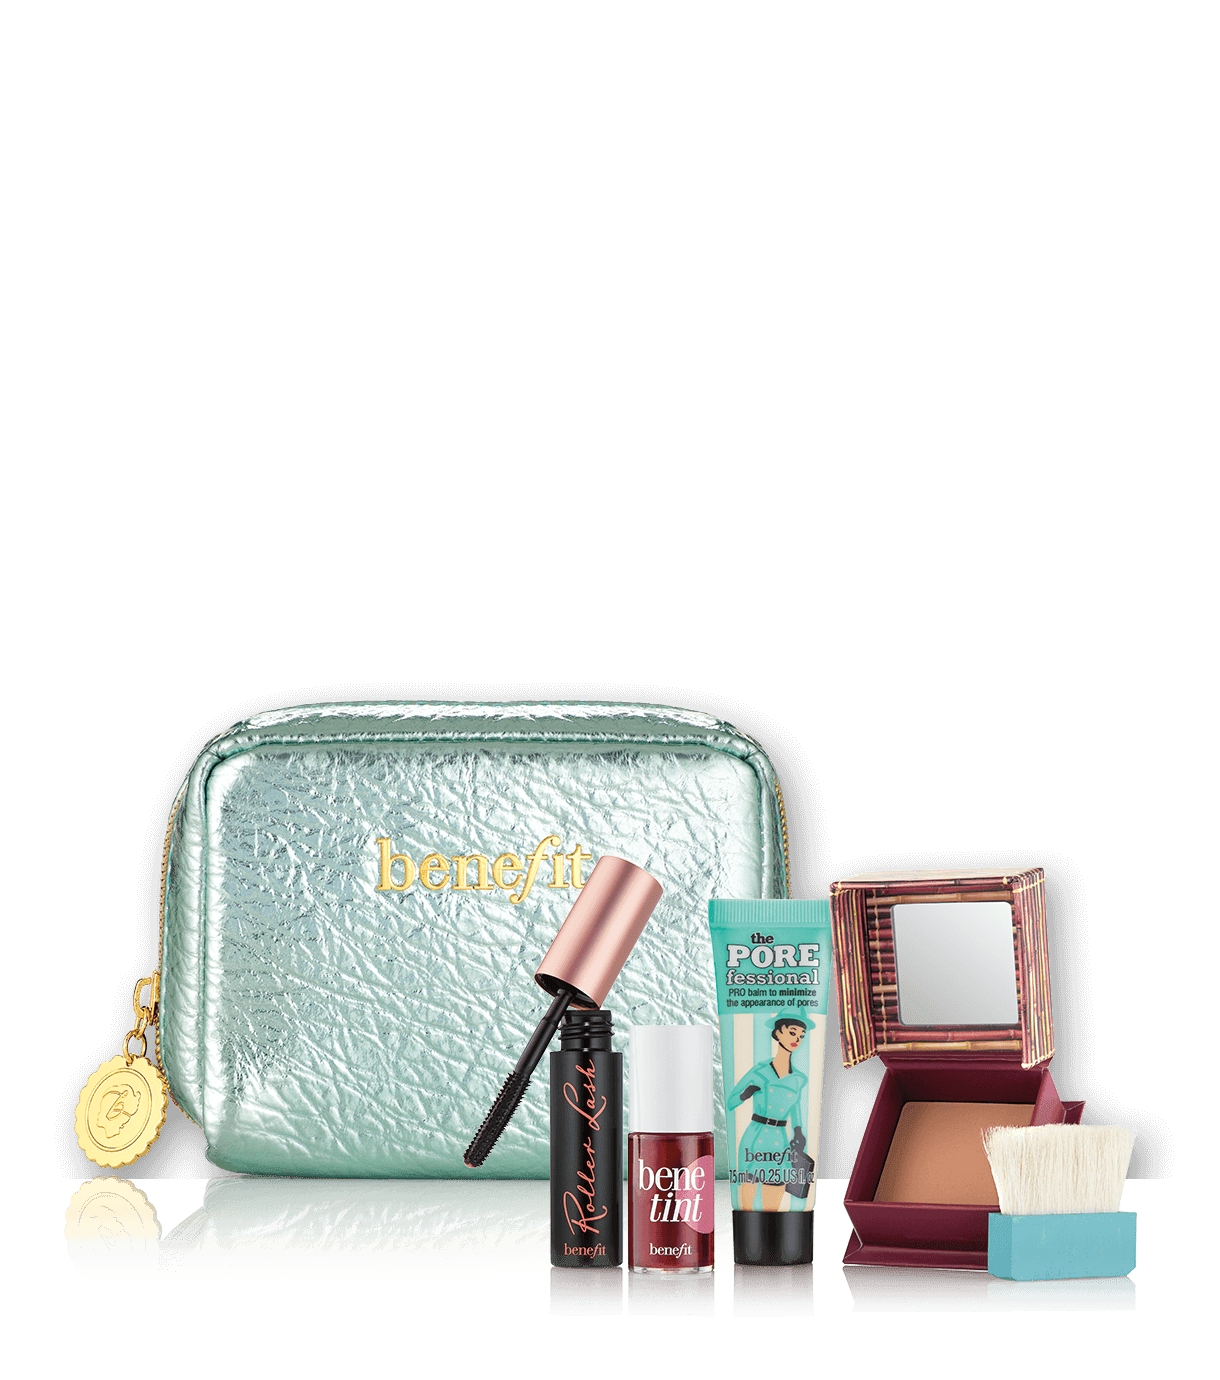 Work kit, girl makeup kit contains Benefit bestsellers benetint, hoola,  roller lash, - Makeup Kit Products PNG